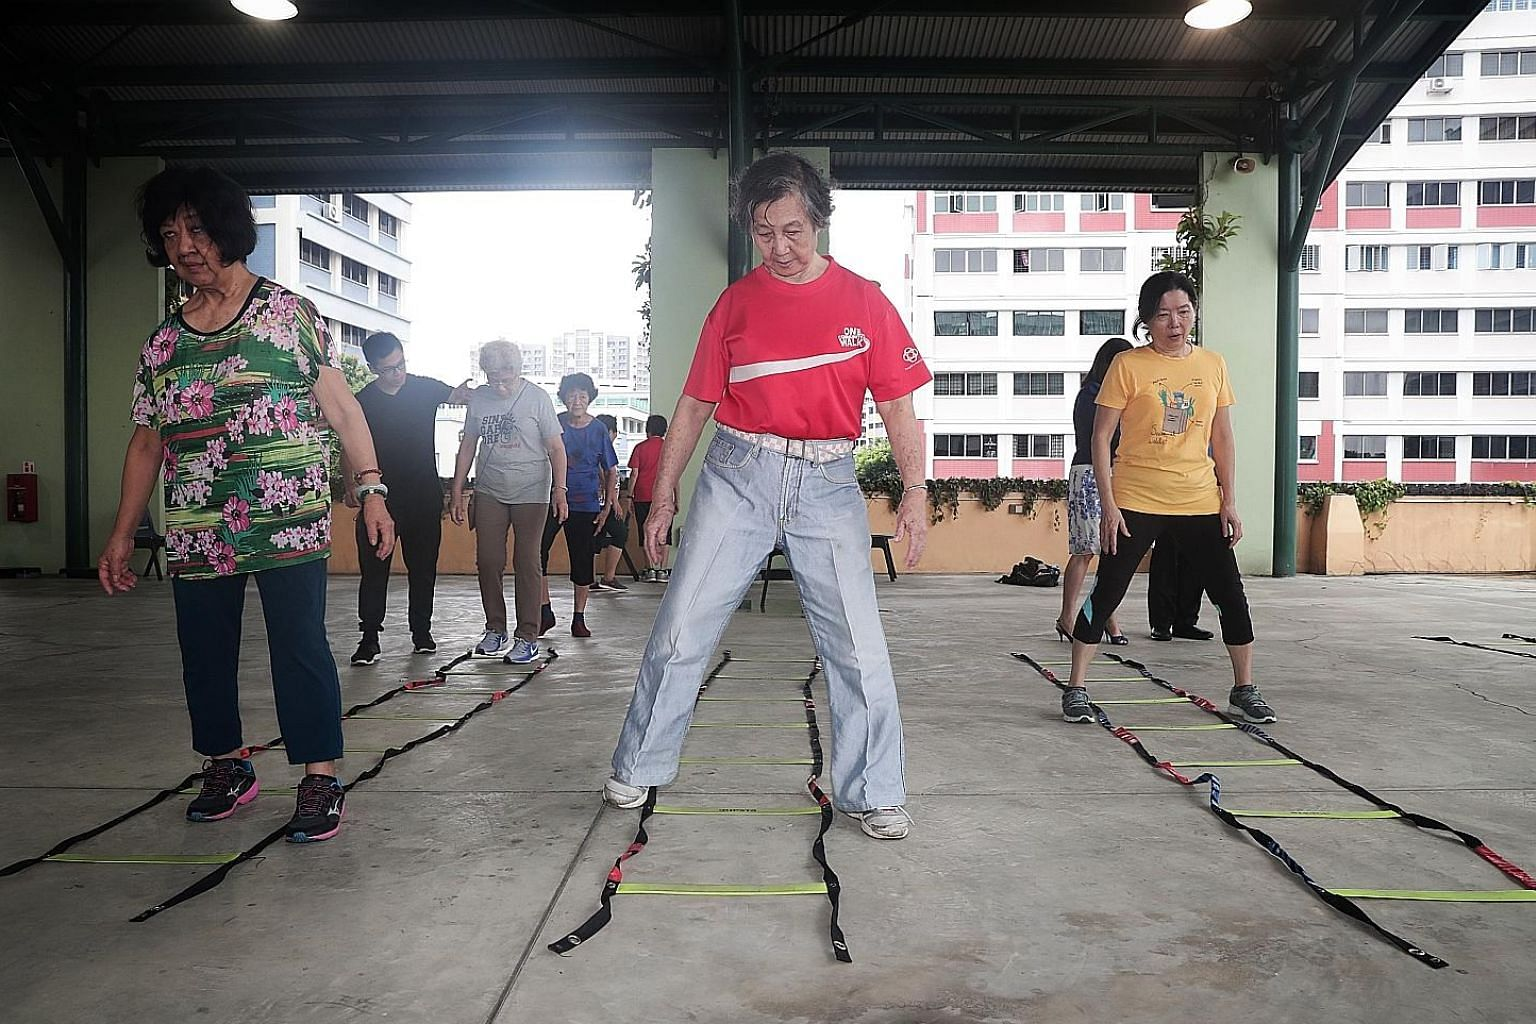 A group of seniors taking part in the Healthy Ageing Promotion Programme For You. The programme has helped many seniors become less frail and have better memory scores, researchers have found. They also improved their walking speed and balance and we